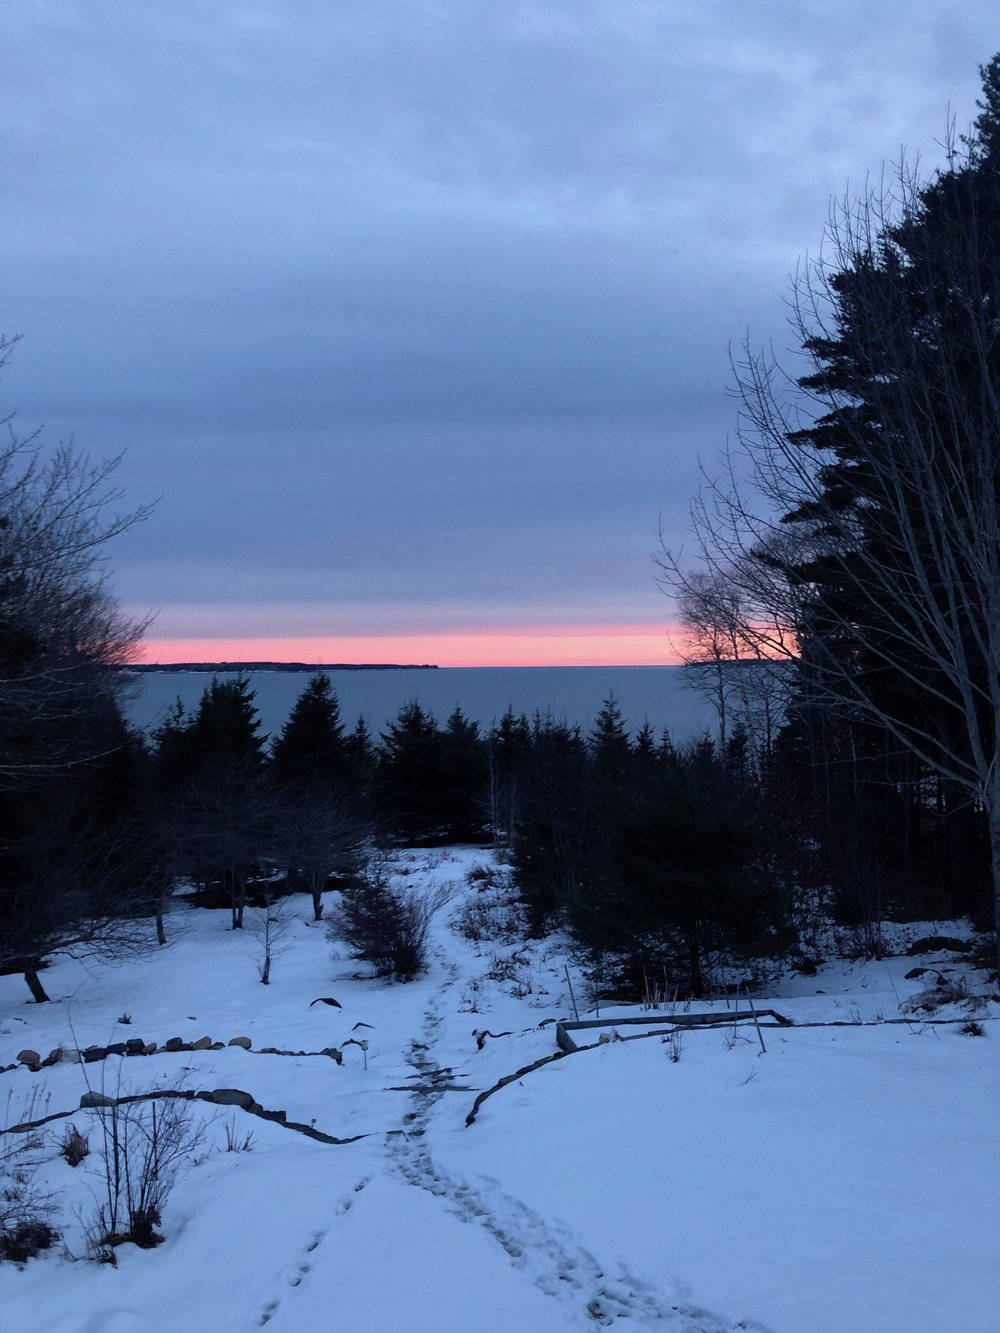 Maine coast on a winter evening (photo by Daniel Blaine).